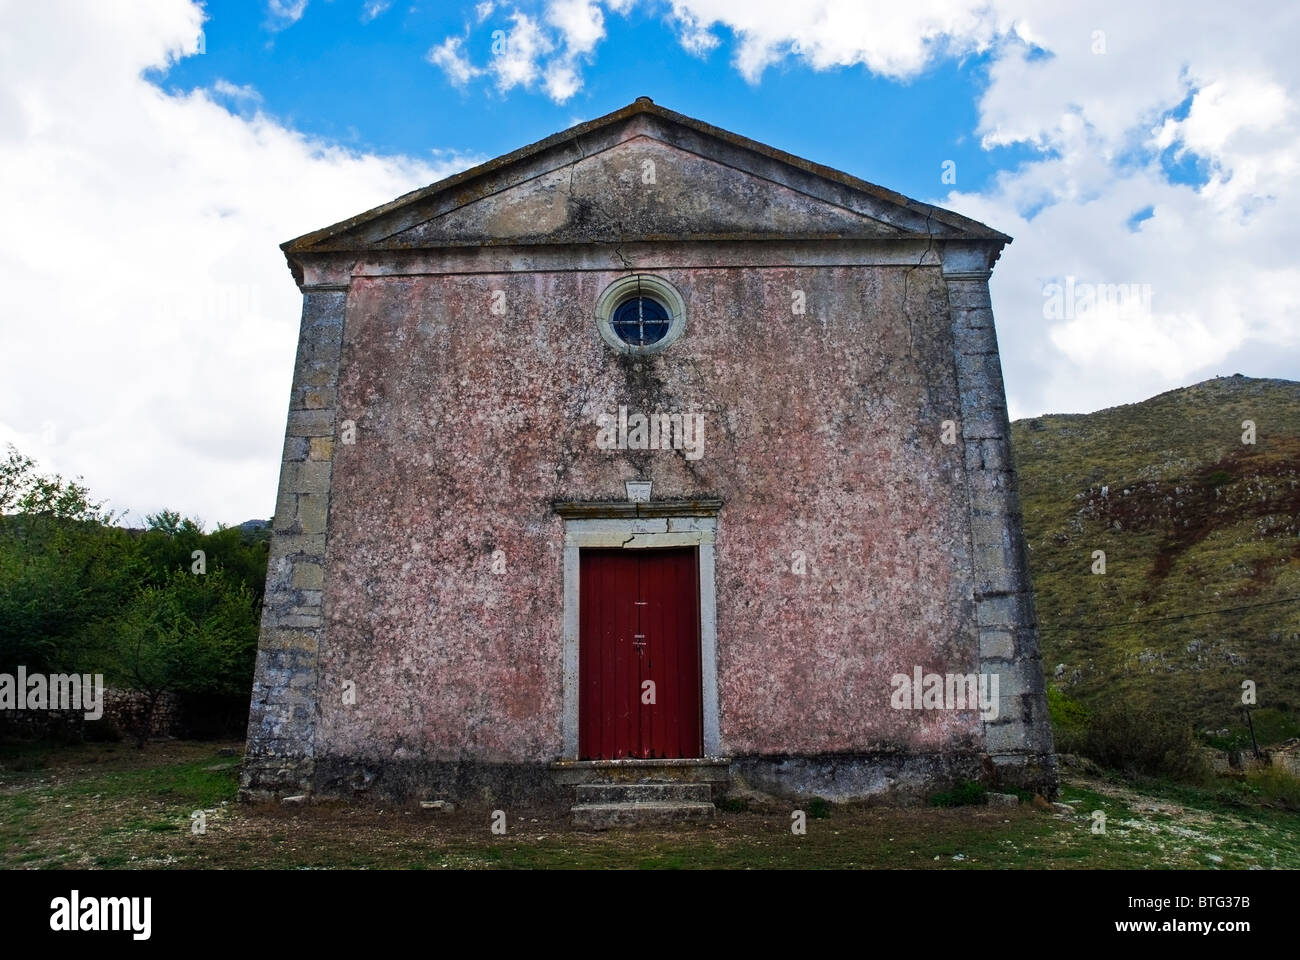 A Church in Old Perithia. - Stock Image